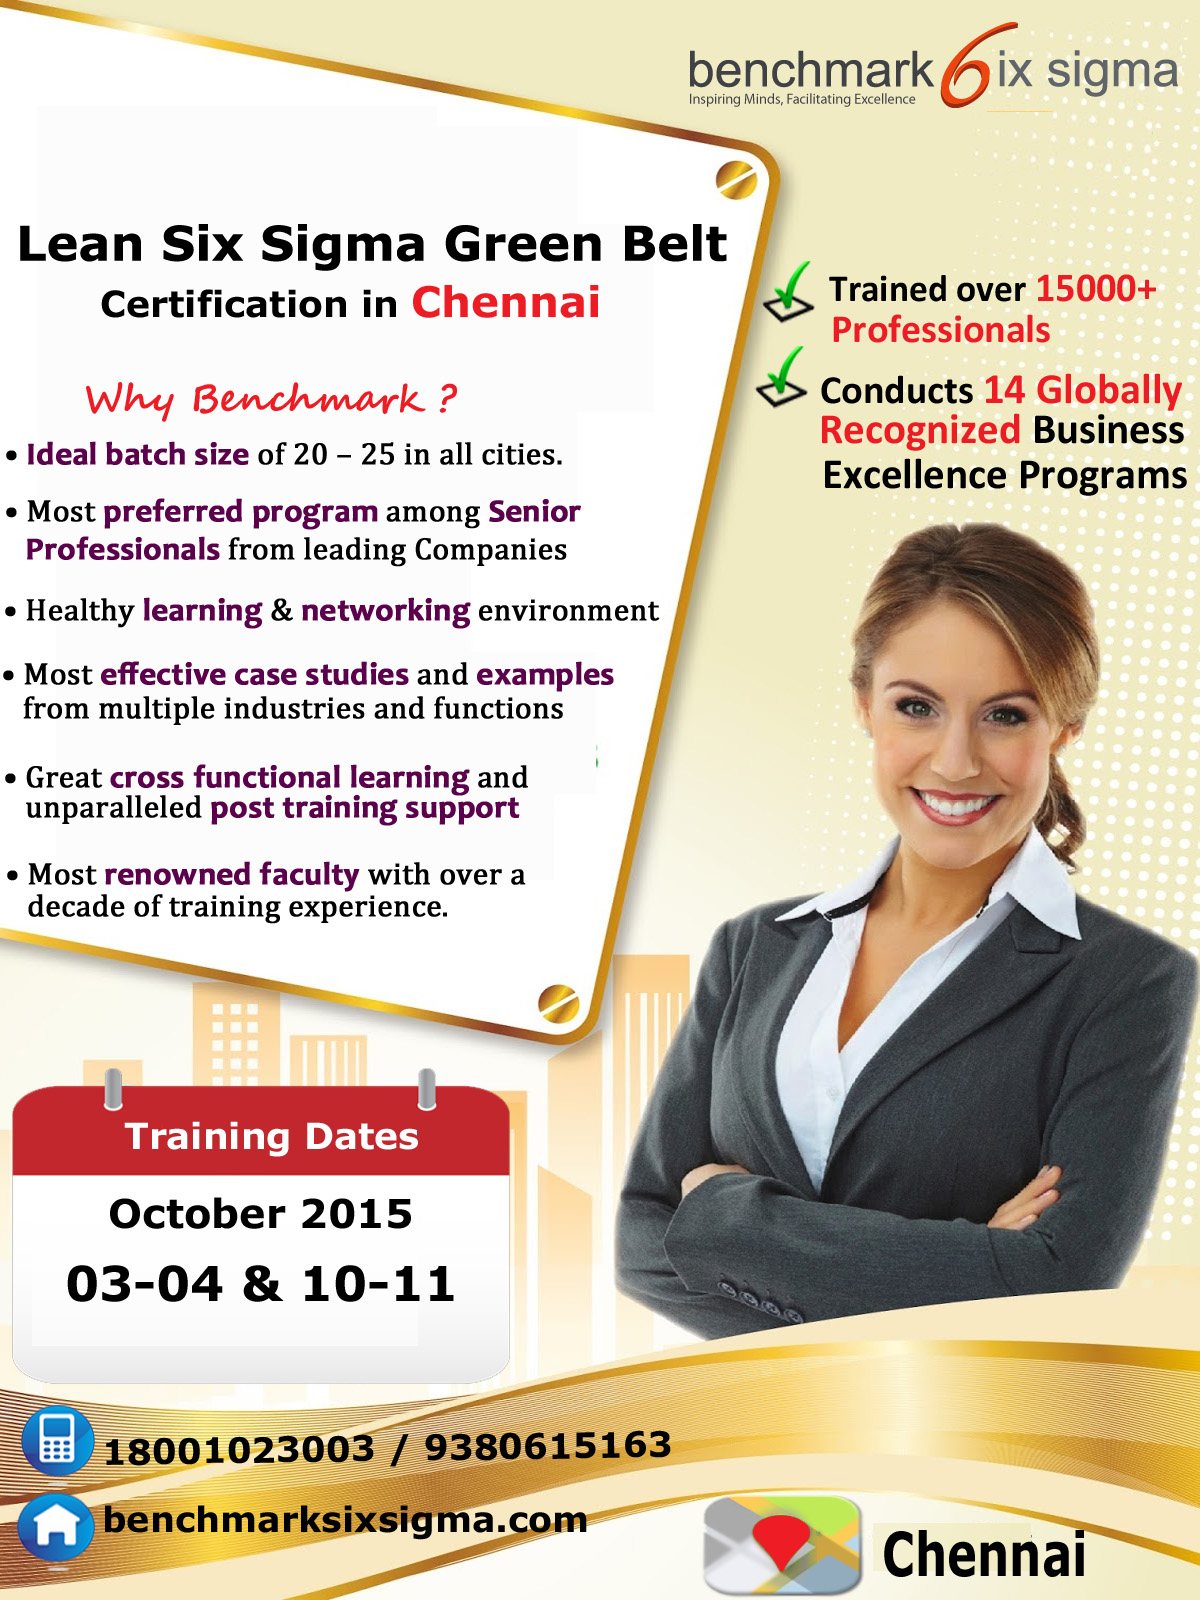 Lean Six Sigma Training Certification Program In Chennai